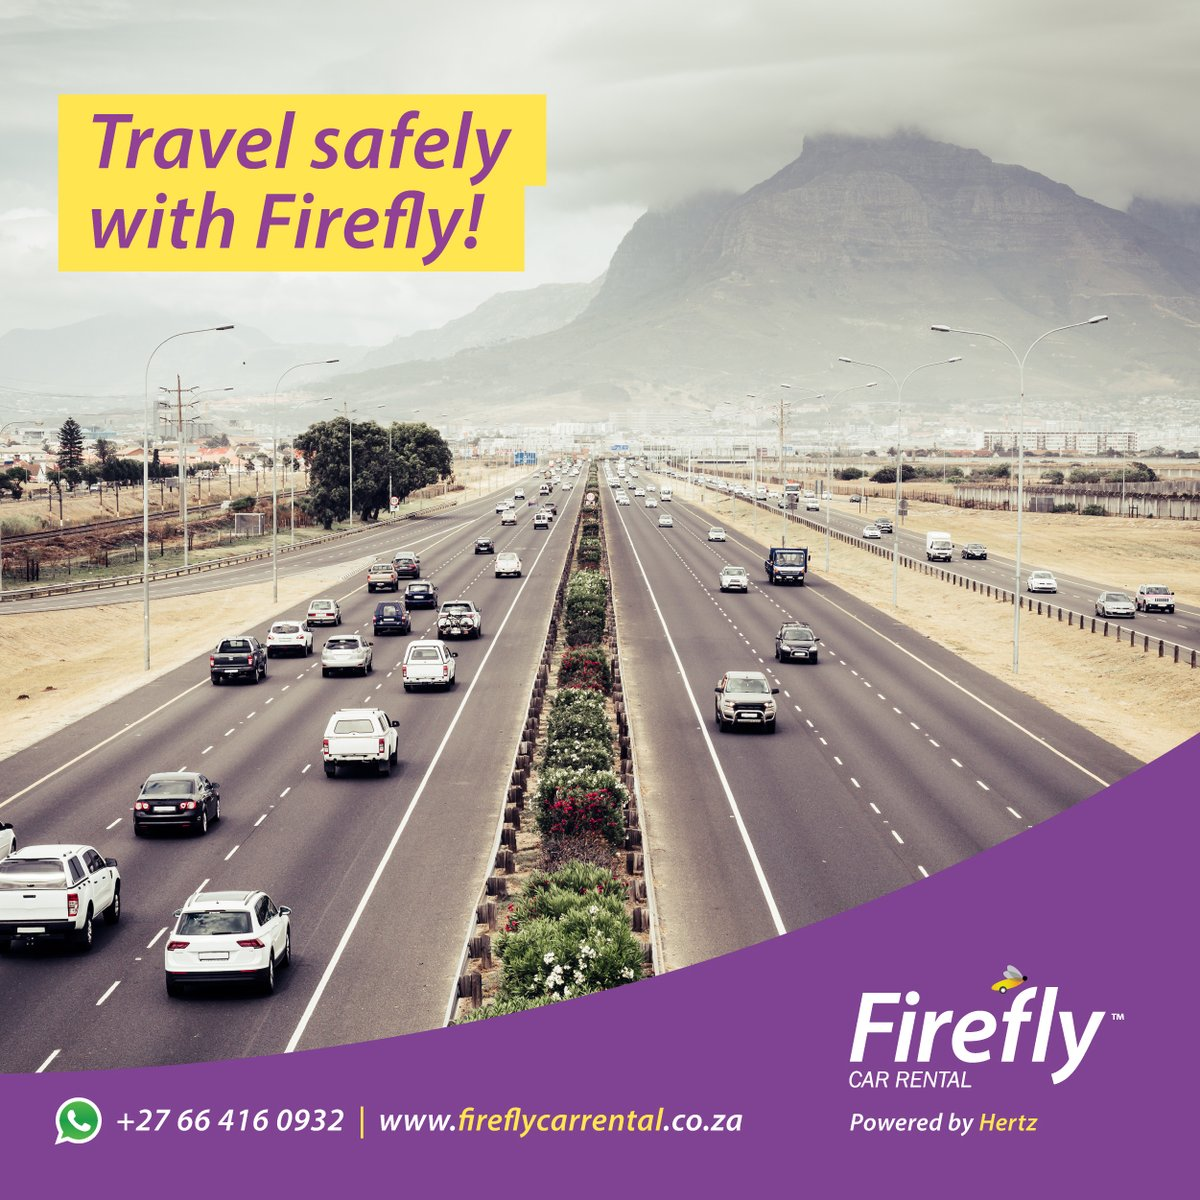 Our cars are cleaned after each use.  This means you can travel safely and with peace of mind when renting from Firefly.  Book a car from us today: .  #Firefly #CarRental #Travel #GoThere #Wanderlust